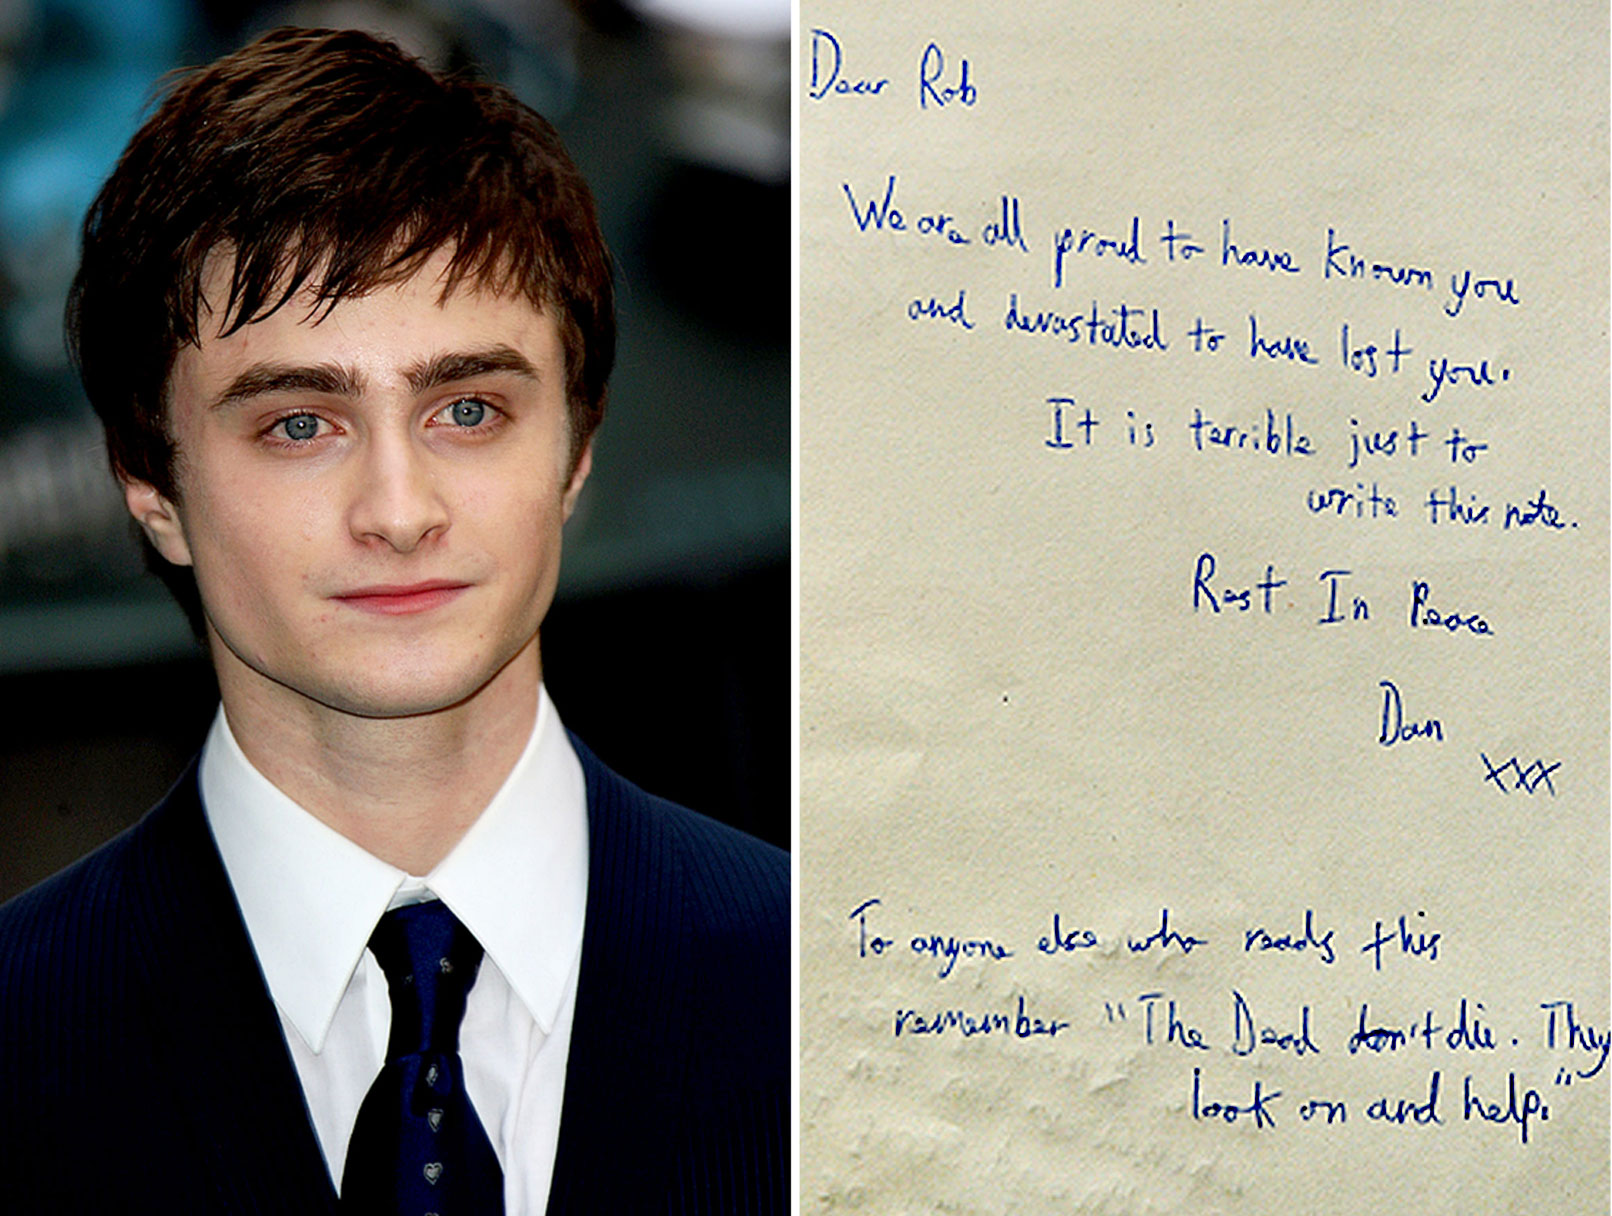 Daniel Radcliffe Offers Condolences to Murdered Co-Star's Family